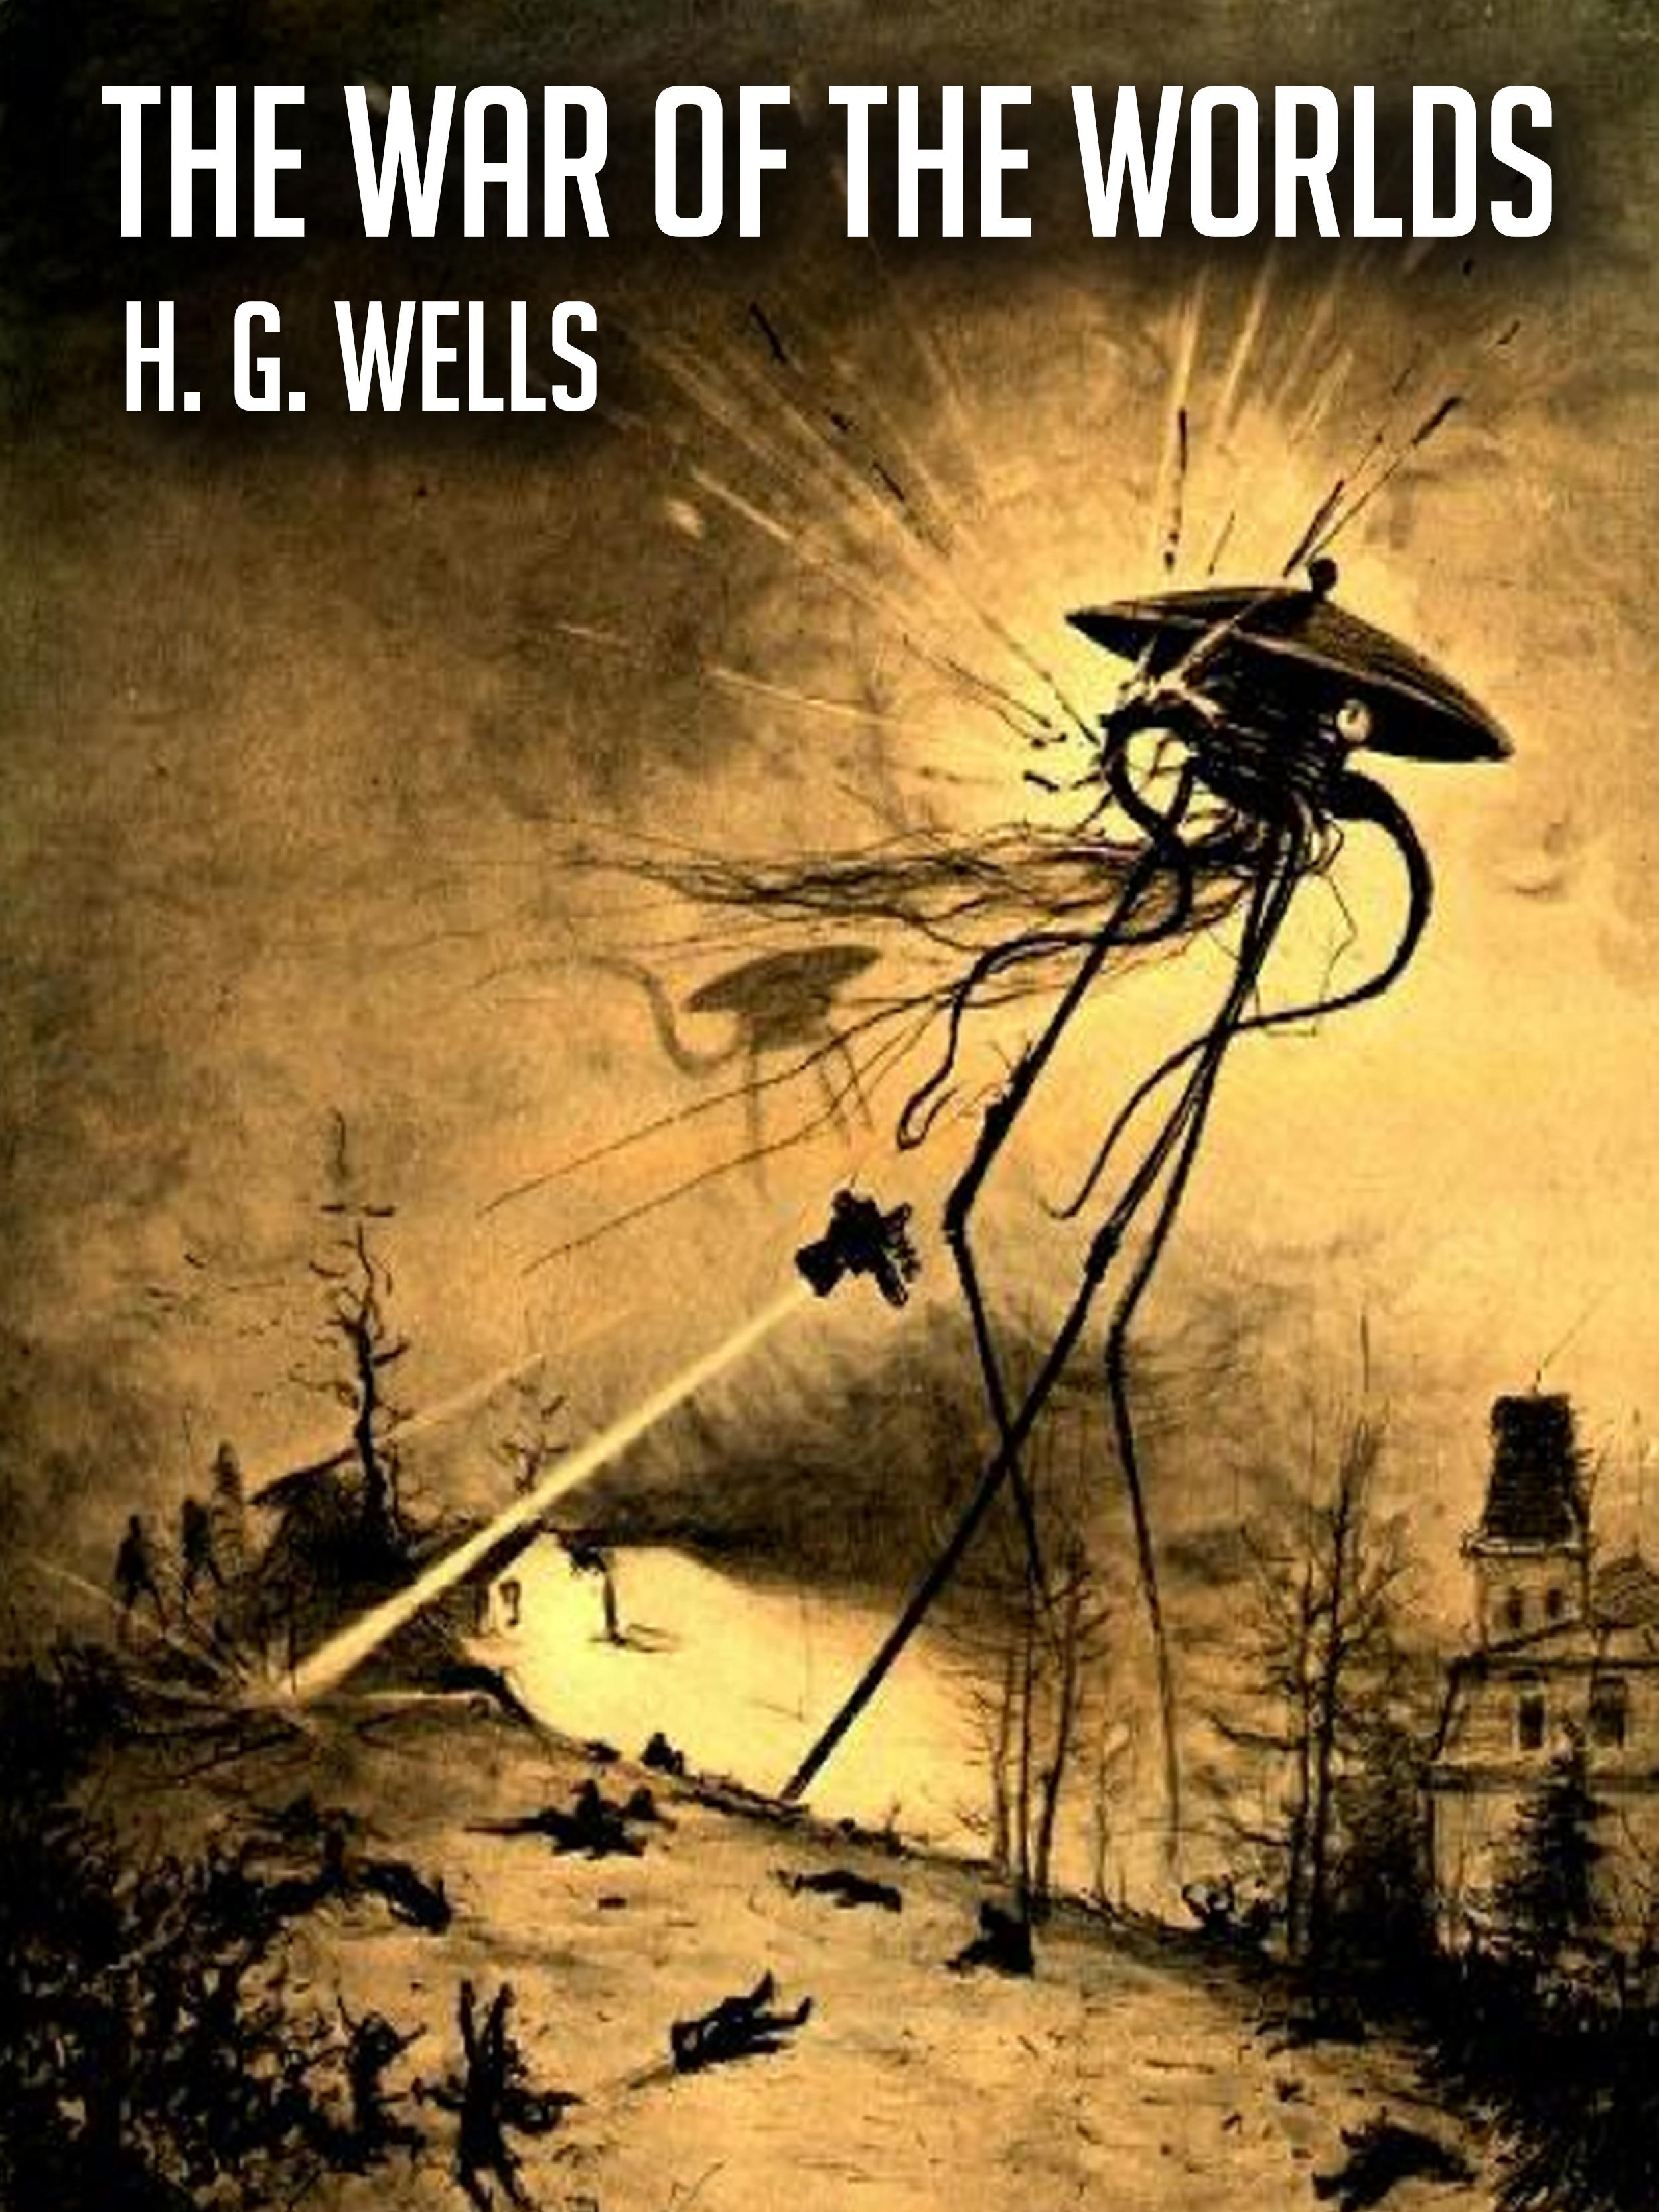 war of the worlds analysis The war of the worlds reflects some of wells's social concerns, although it is not as heavily laden with social commentary as the time machine the martians represent colonialists, while the europeans-traditionally the colonialists themselves-are the primitives confronting invaders who possess a bewilderingly superior.